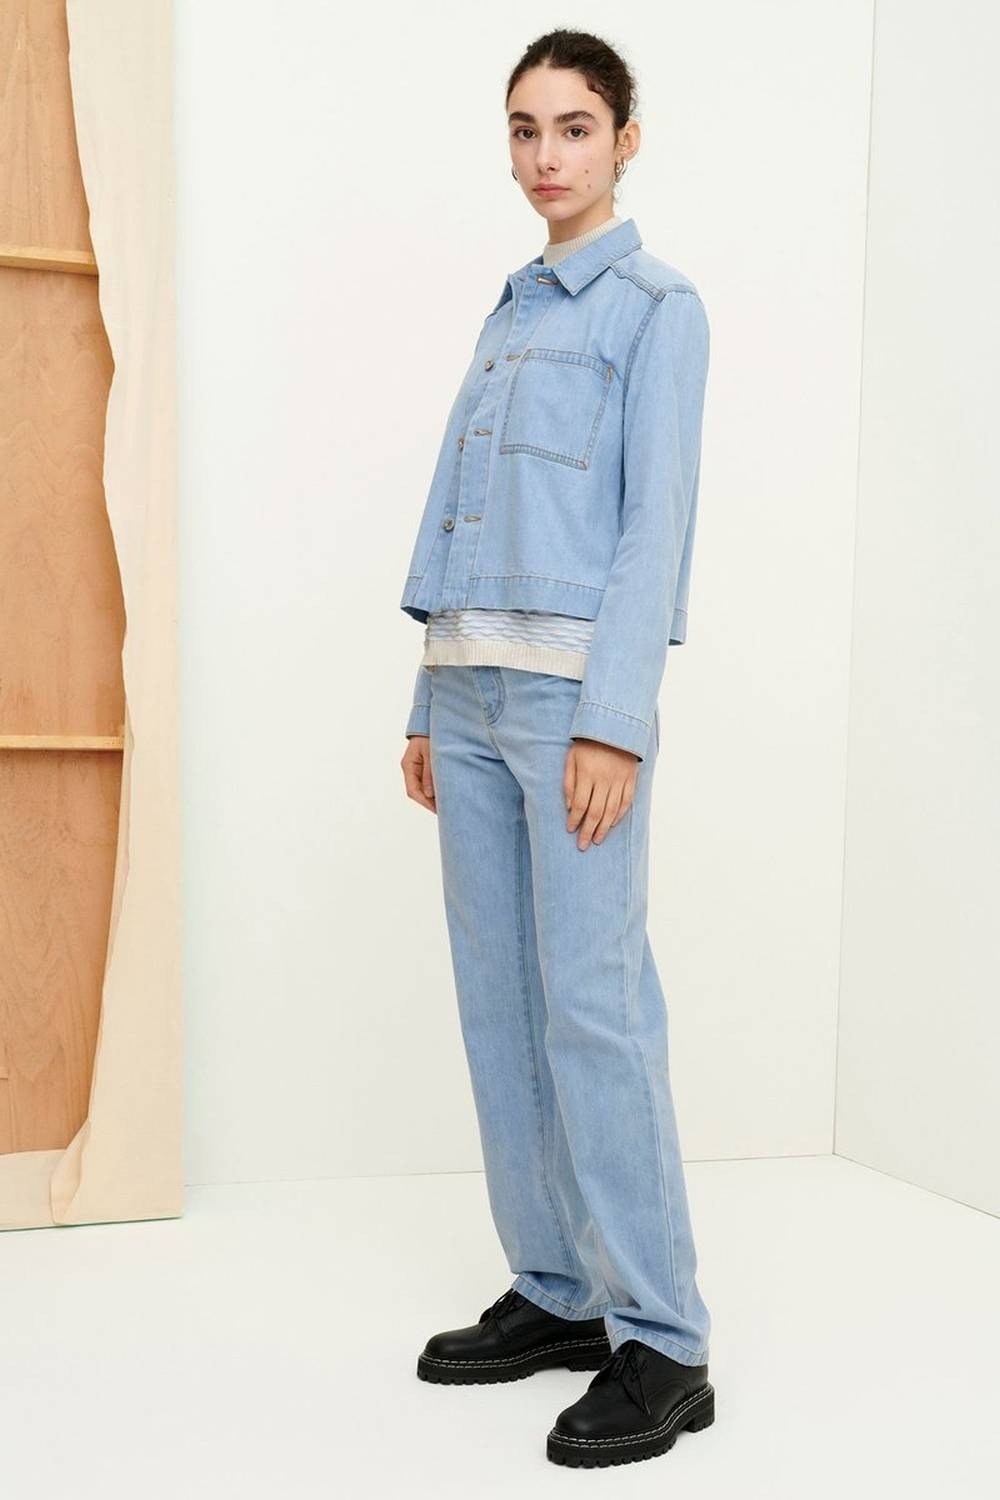 kowtow sustainable womens denim jackets